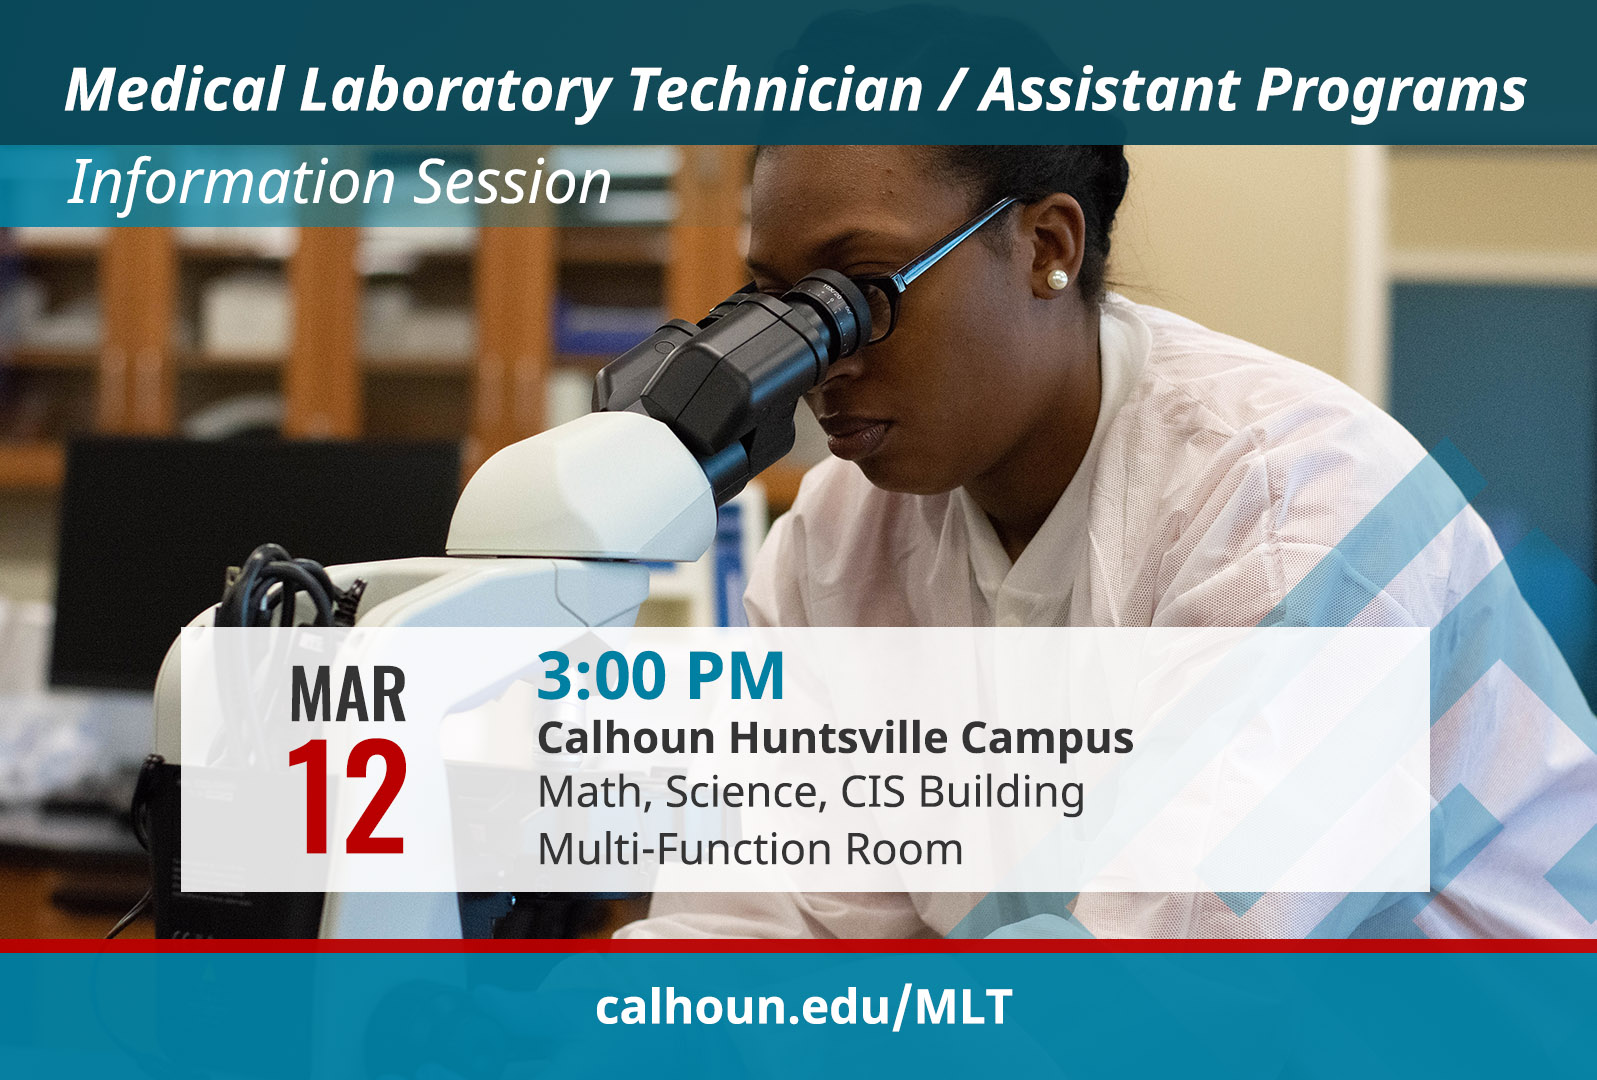 Tuesday, March 12, 2019 3pm Multifunction Room, 1st floor MSCIS Buliding Huntsville Campus www.calhoun.edu/mlt for more information contact 256.306.2786 or misty.greene@calhoun.edu